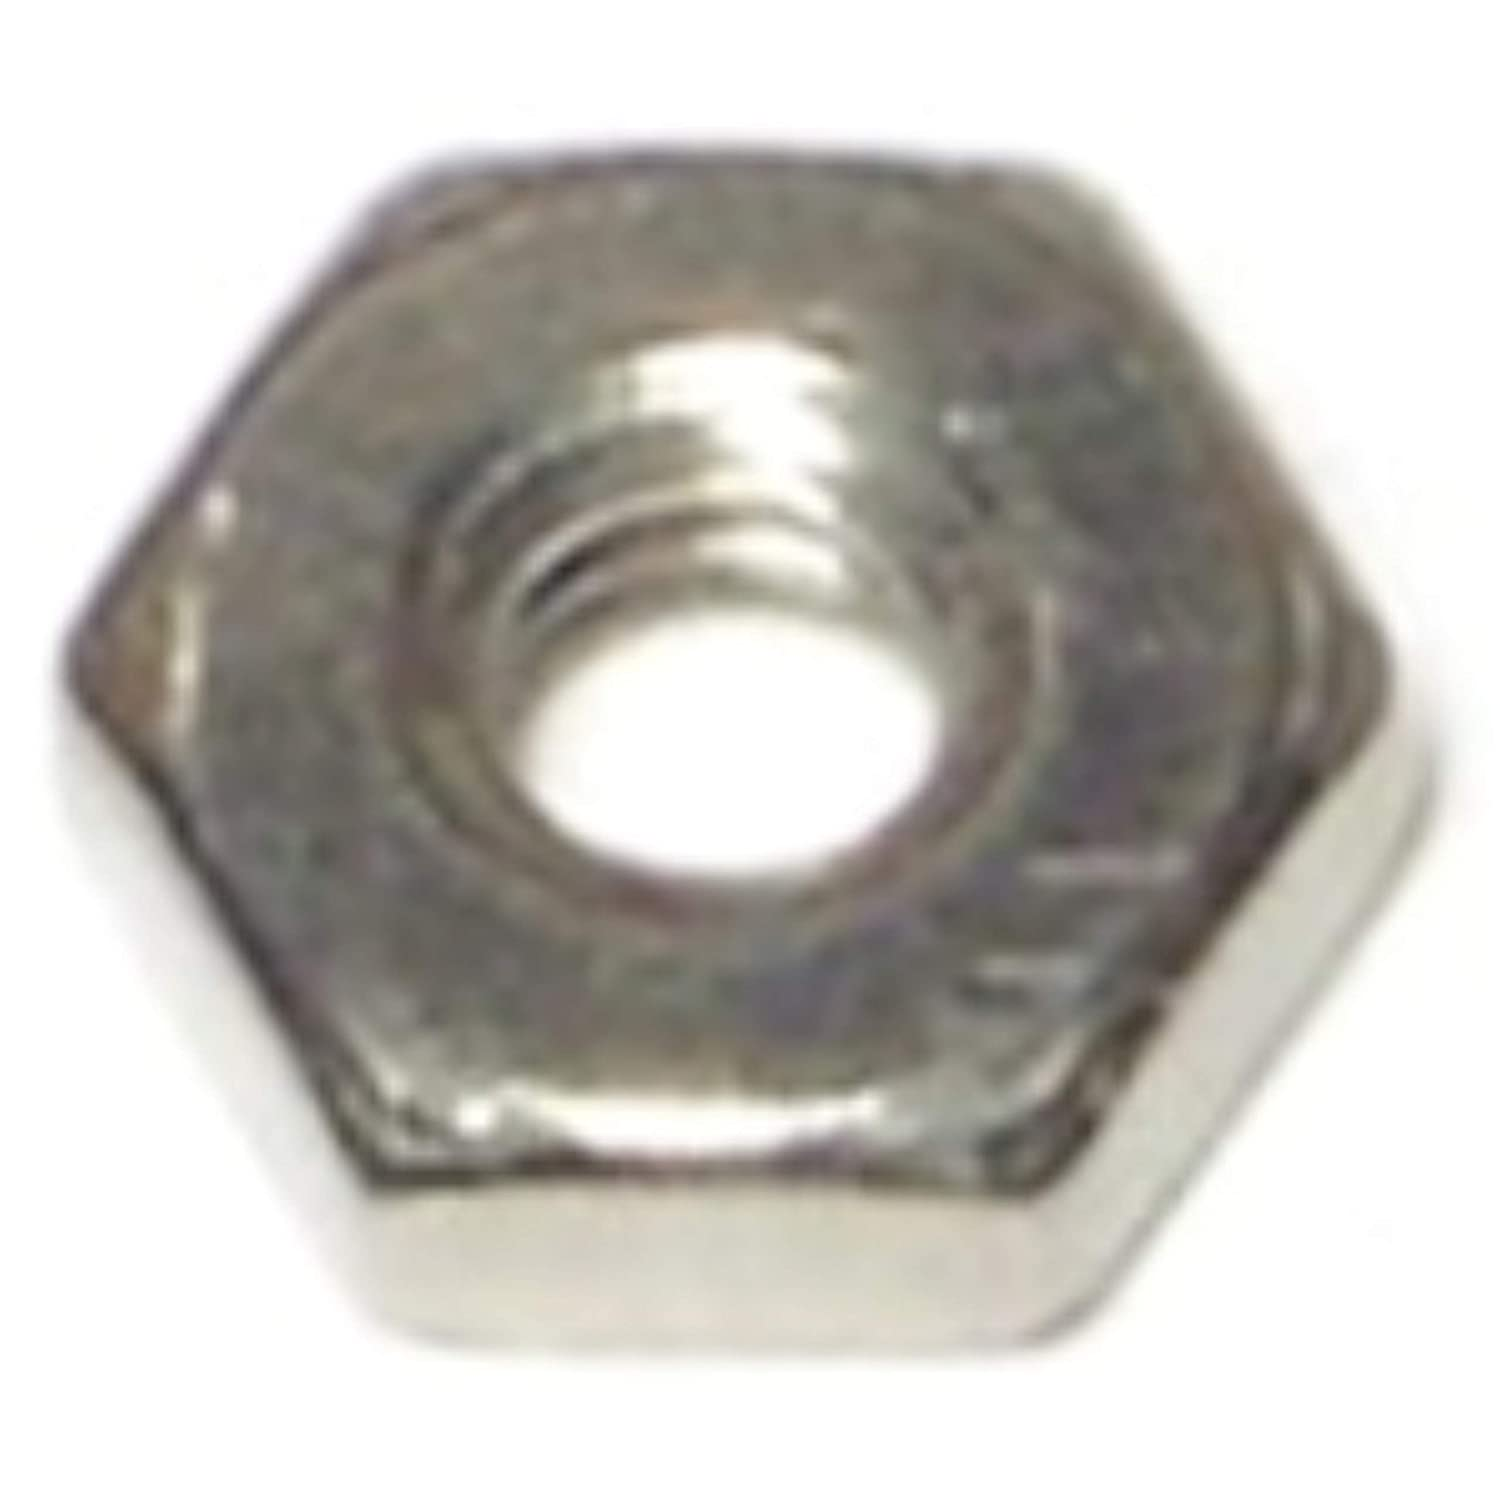 Hard-to-Find Fastener 014973191061 Finished Hex Nuts Piece-30 6-32